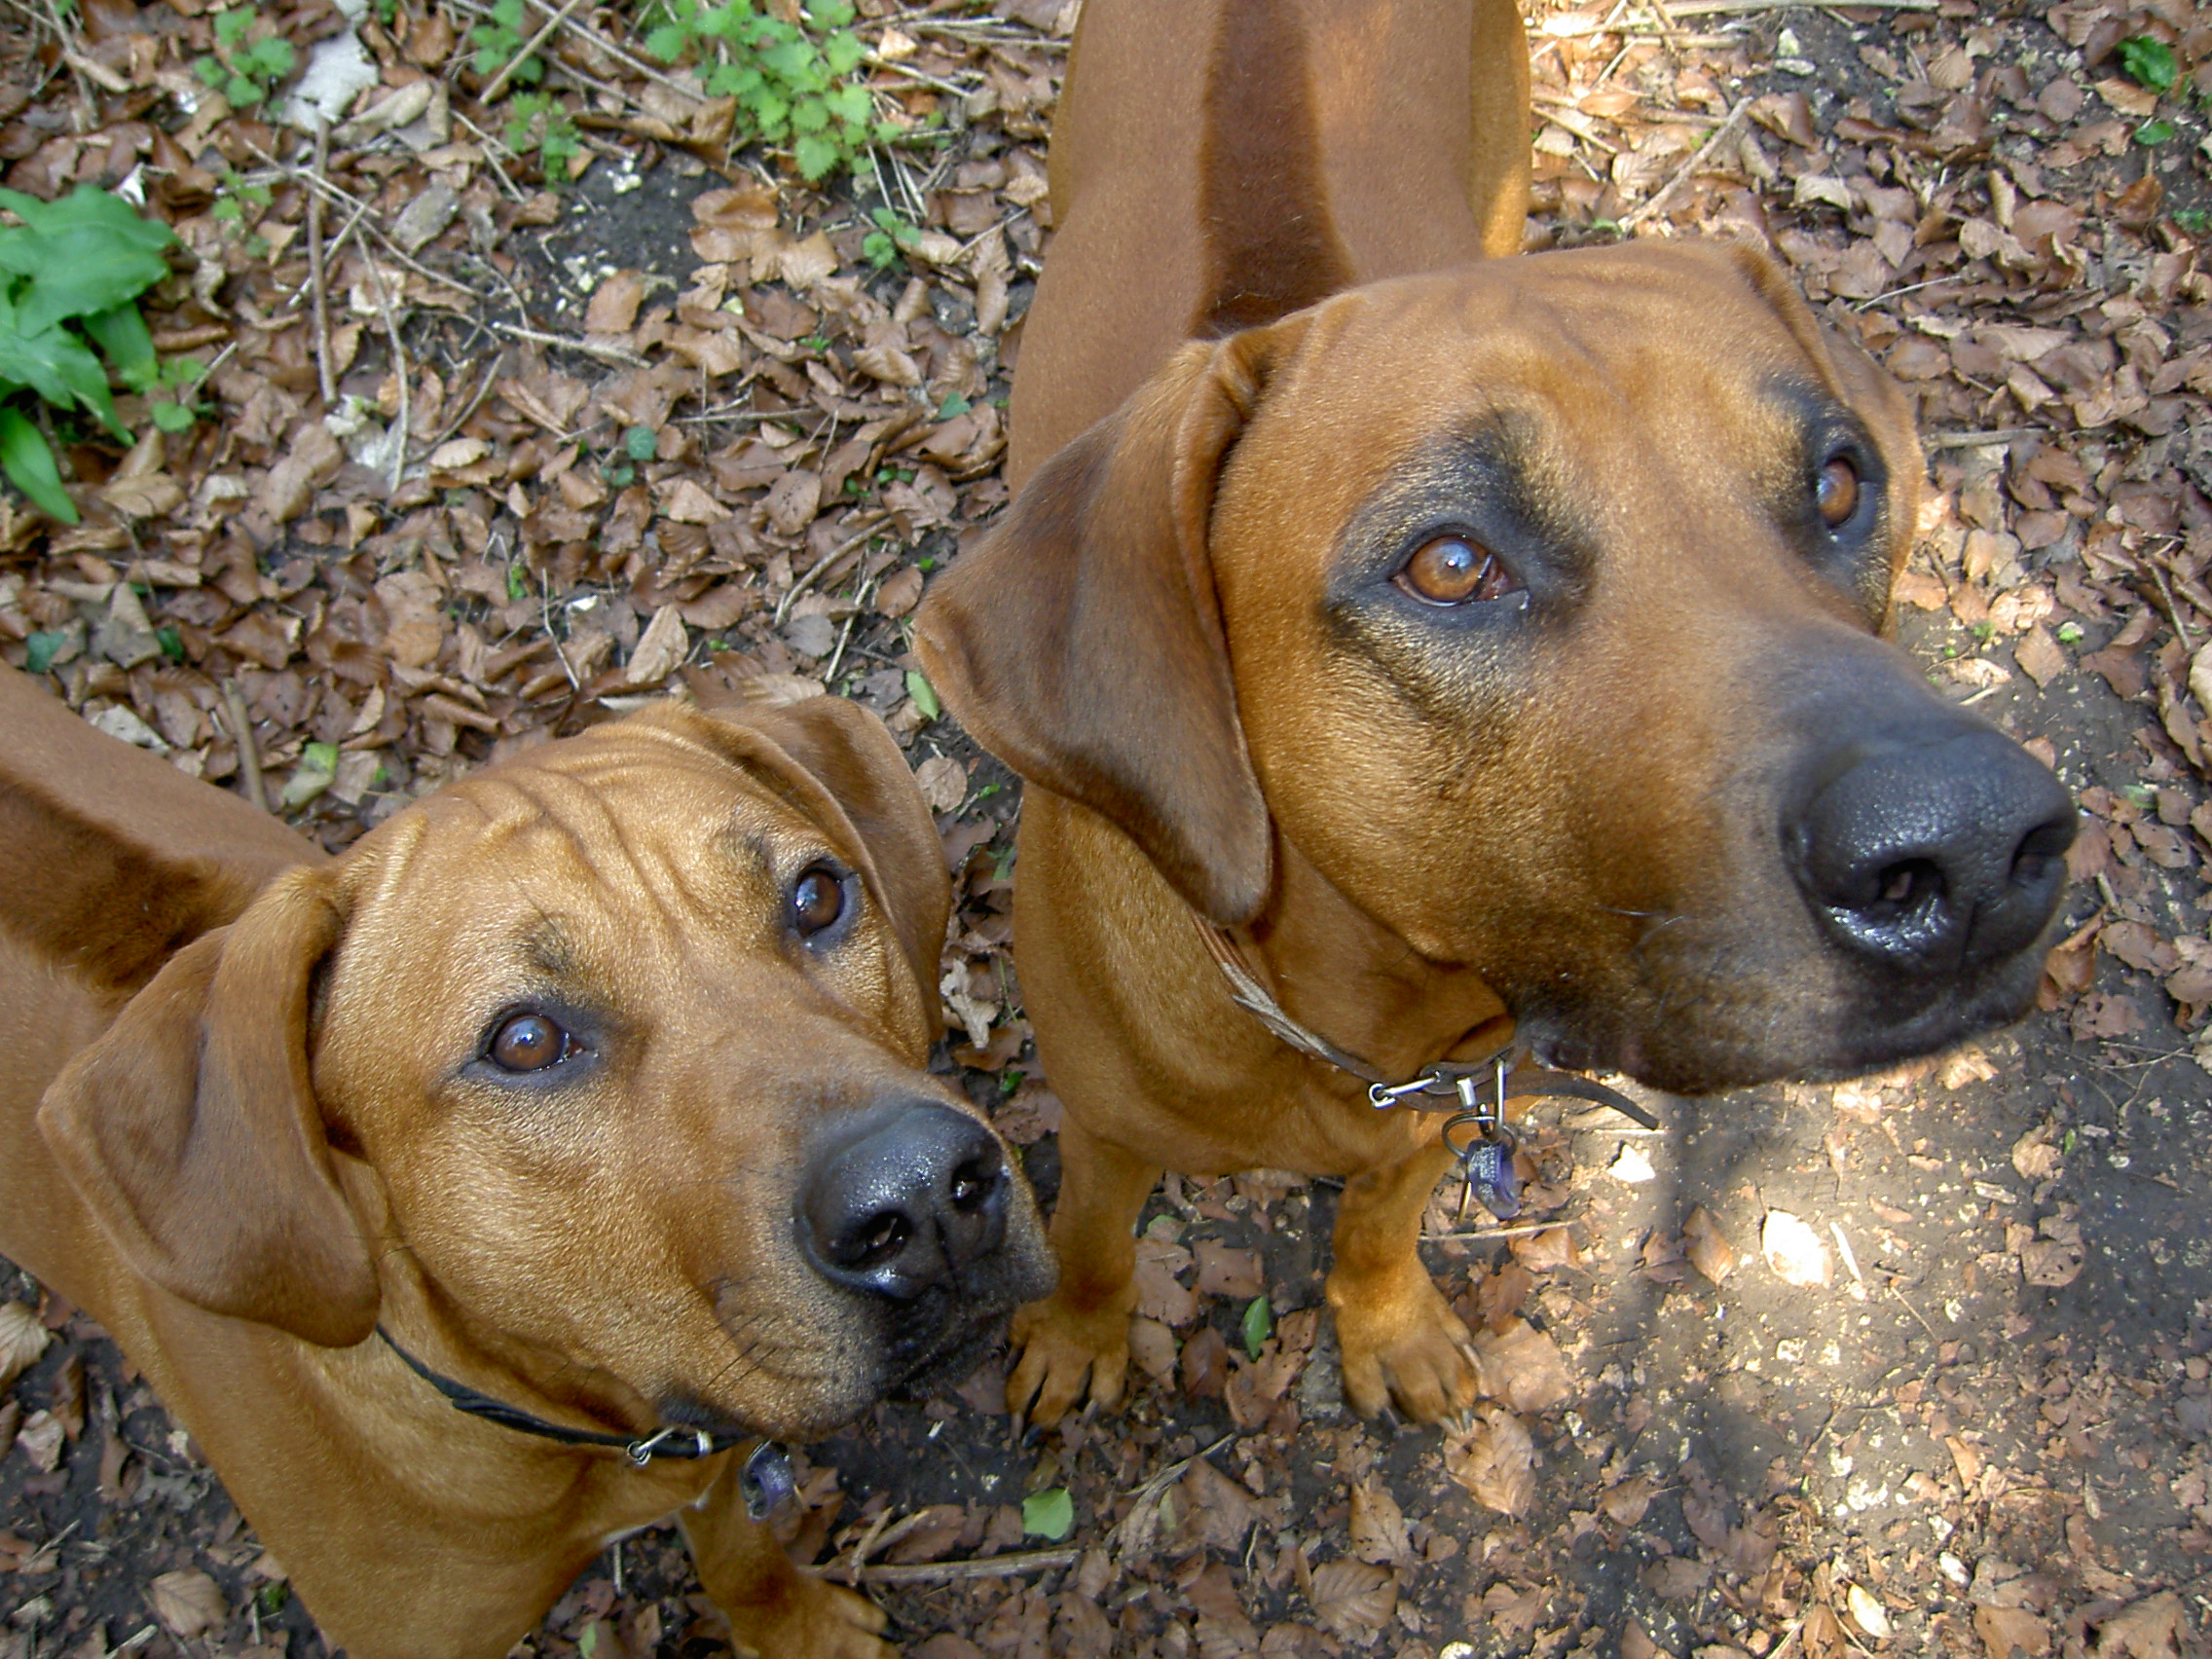 Two very healthy rhodesian ridgeback noses displaying no nasal discharge at all Axl aka Janak Jago of Metalrock and Rain aka Voorlooper Rude Not To of Metalrock